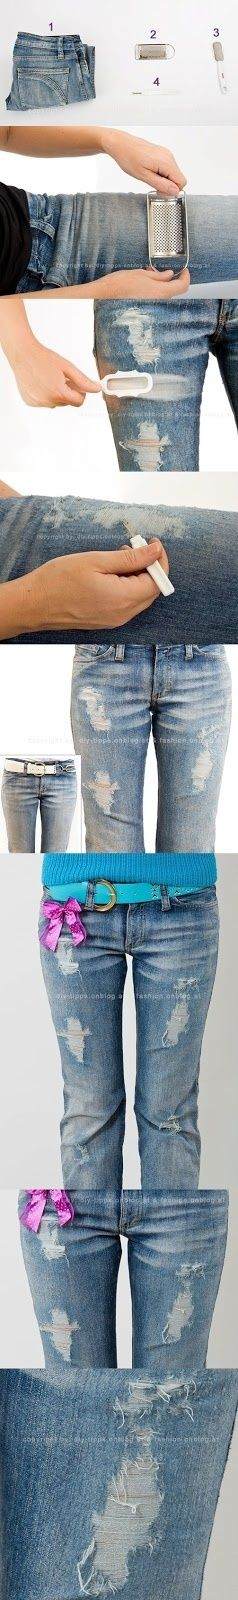 Good to know for how to distress your jeans. DO NOT BUY already ripped jeans for ridiculous prices!